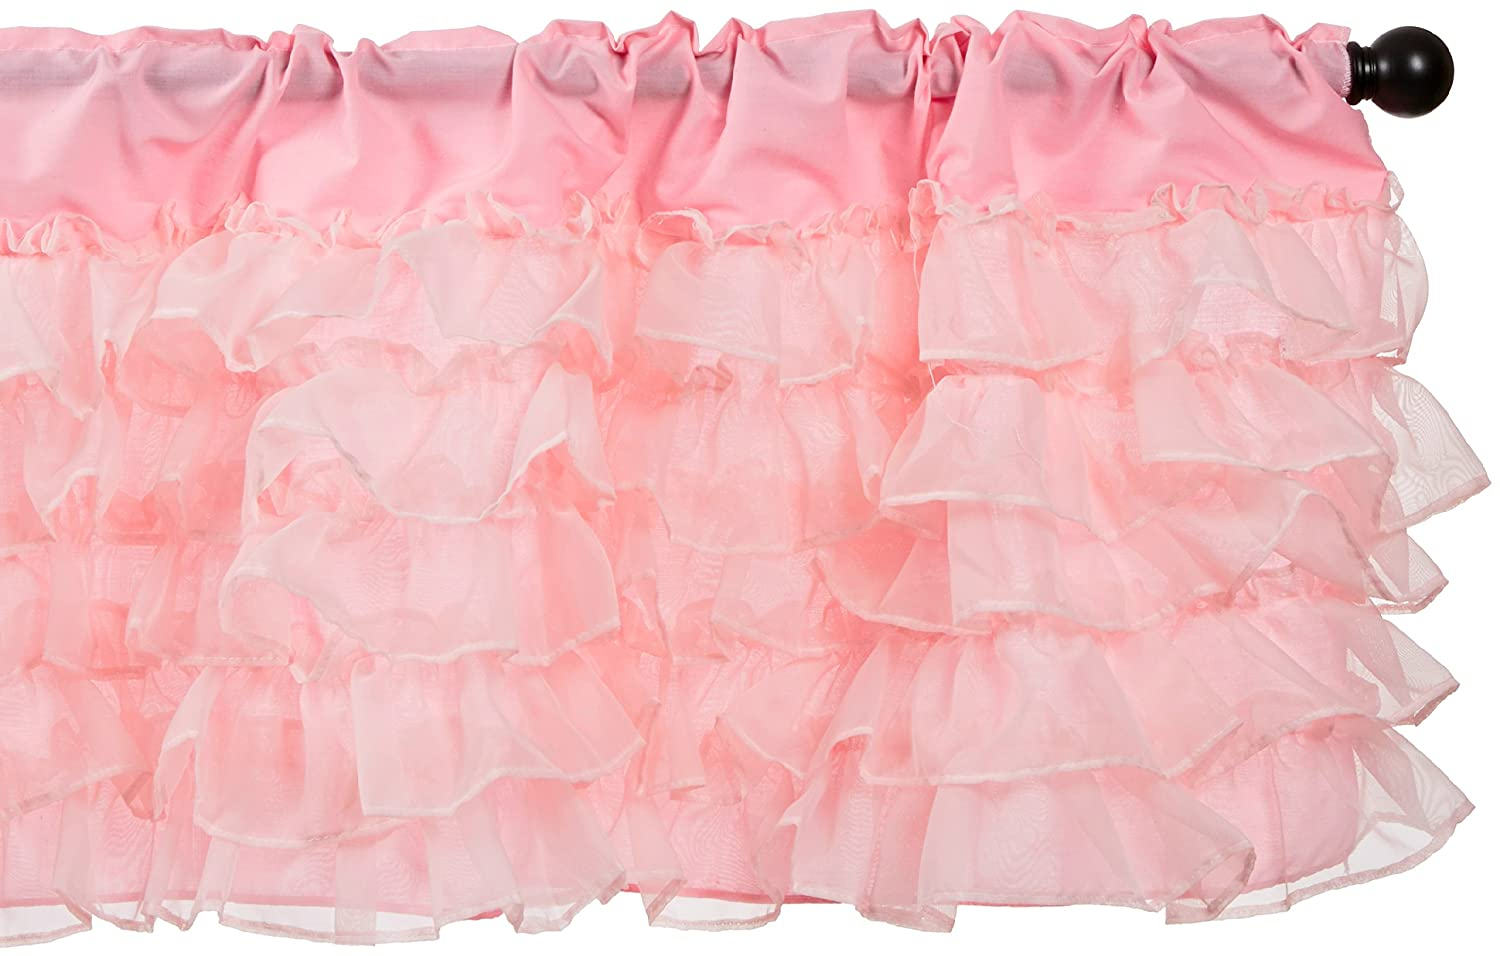 Baby Doll Bedding Layered 5 Piece Window Valance and Curtain Set, Pink 9750valc5-pink